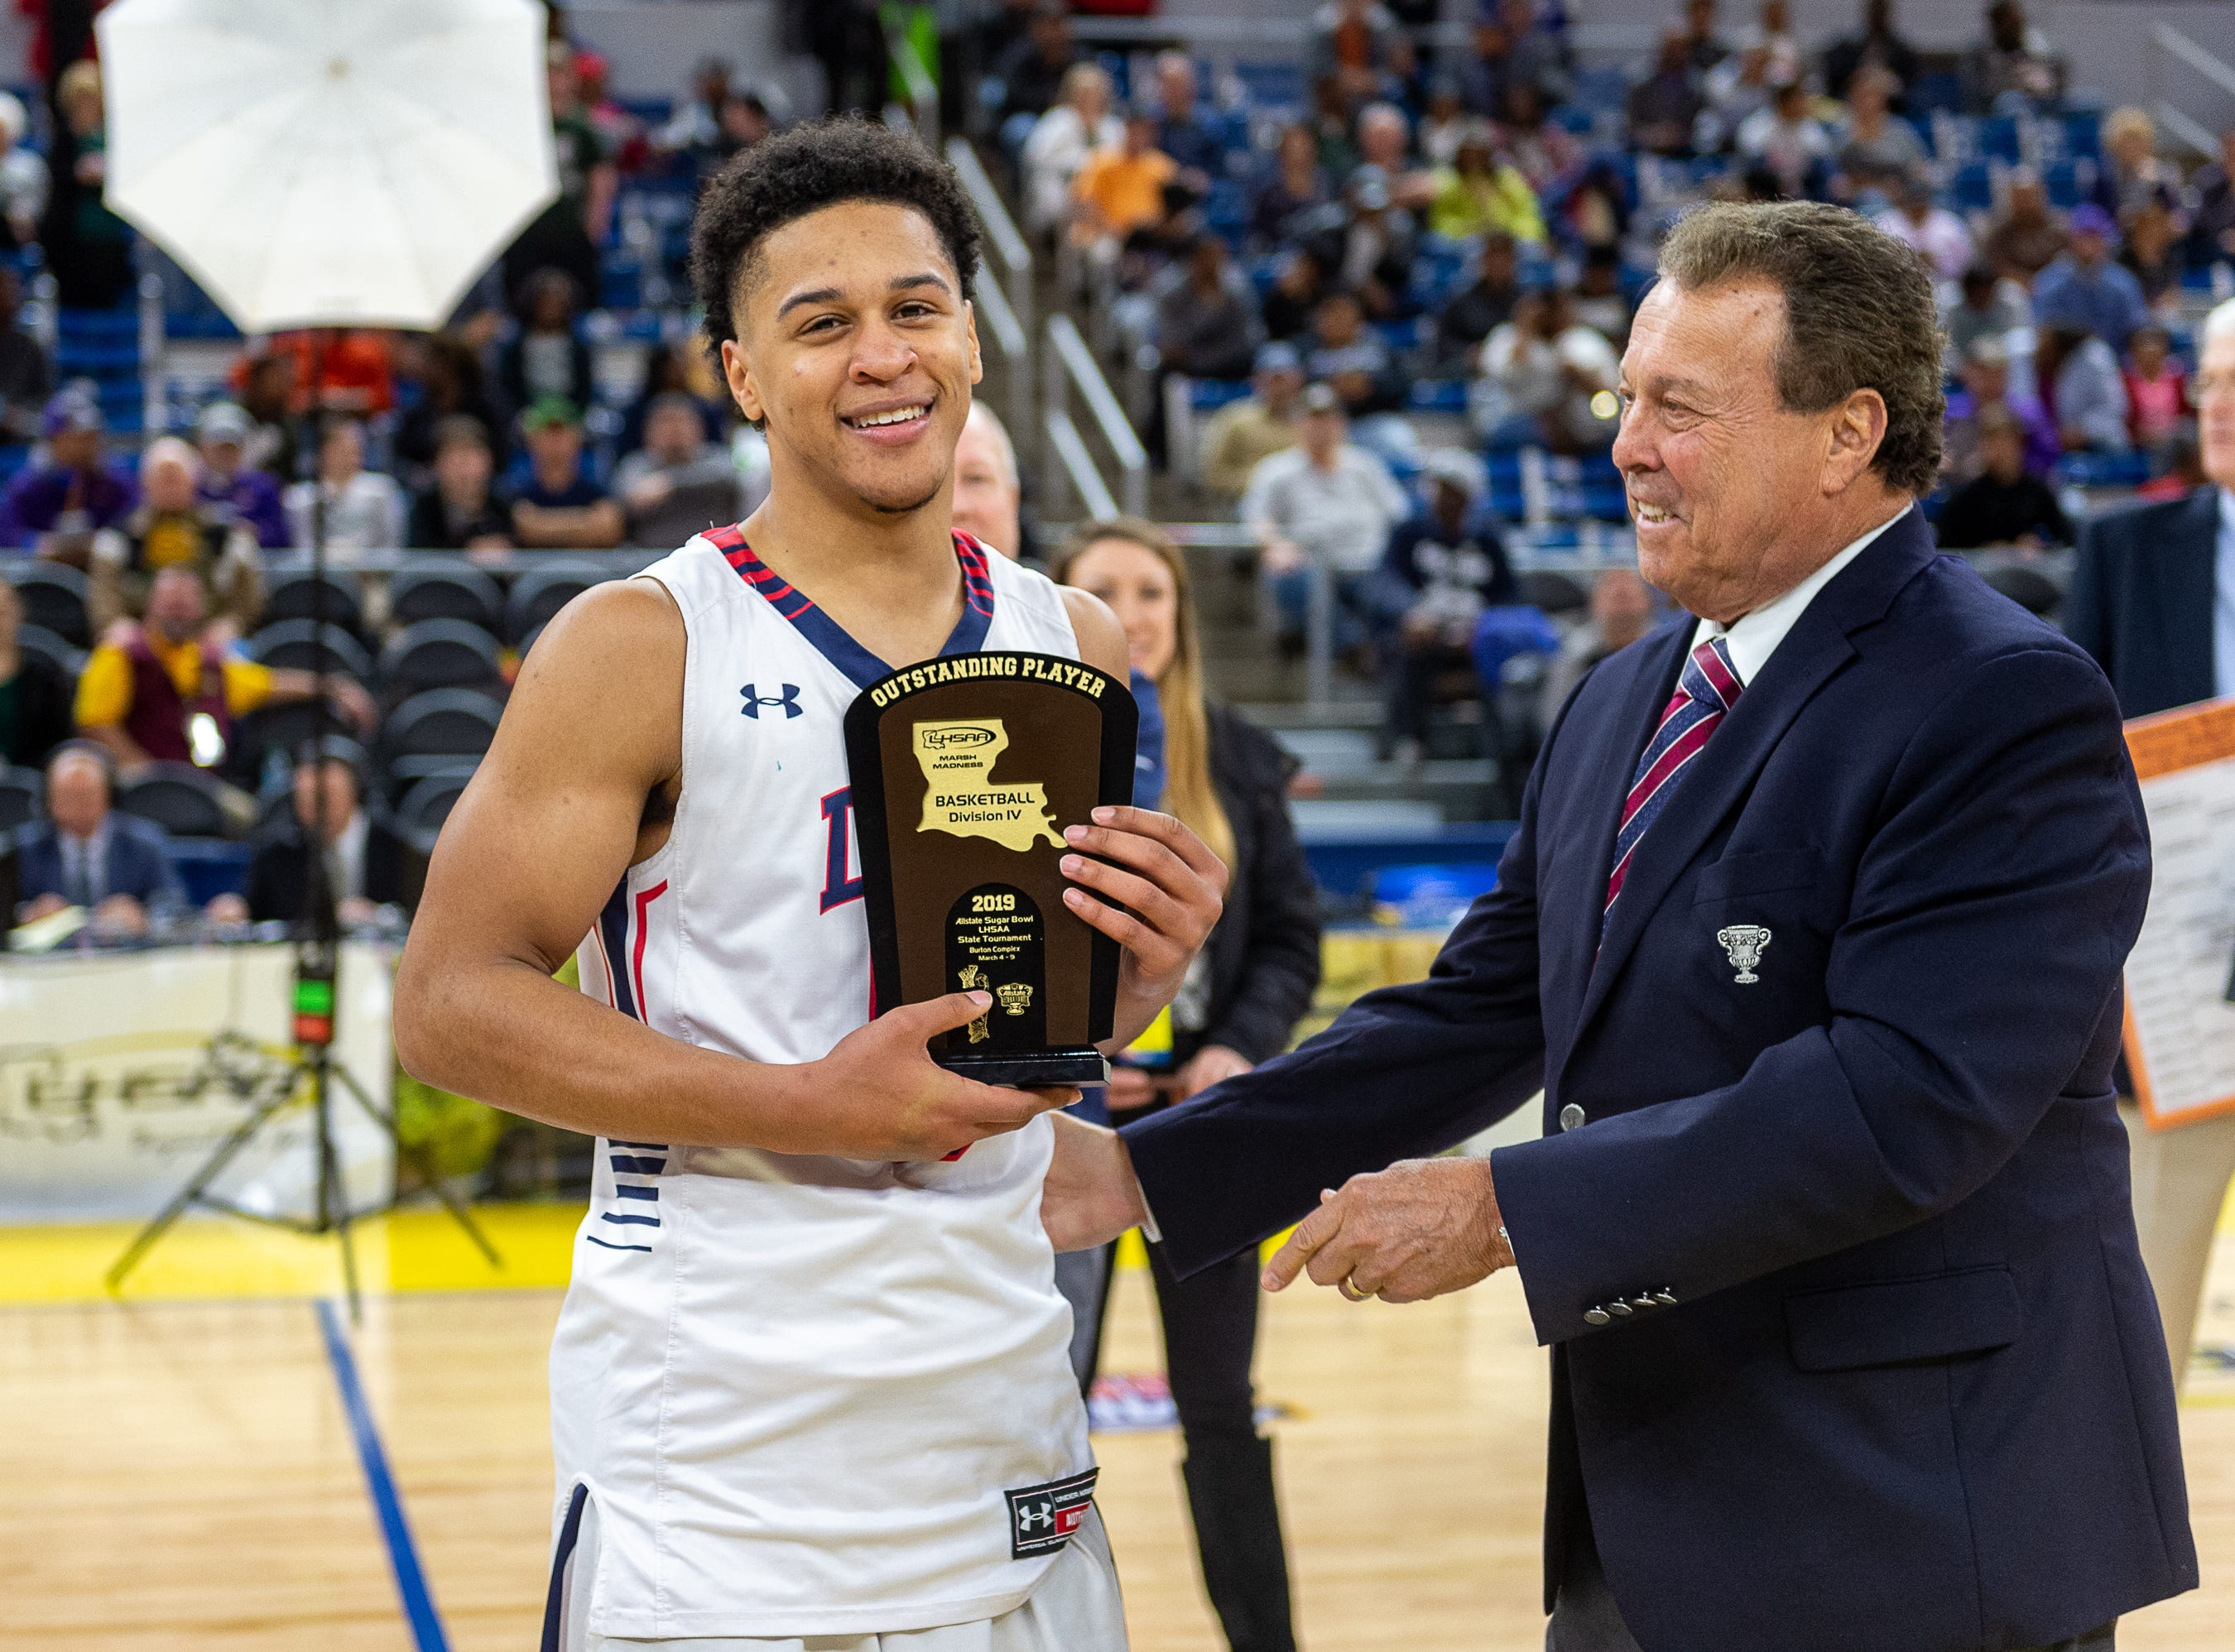 Billy Francis Jr. recognized as Outstanding Player of the game as Lafayette Christian takes down Hamilton Christian to win the Allstate Sugar Bowl/LHSAA Boys' Marsh Madness State Championship. Friday, March 8, 2019.